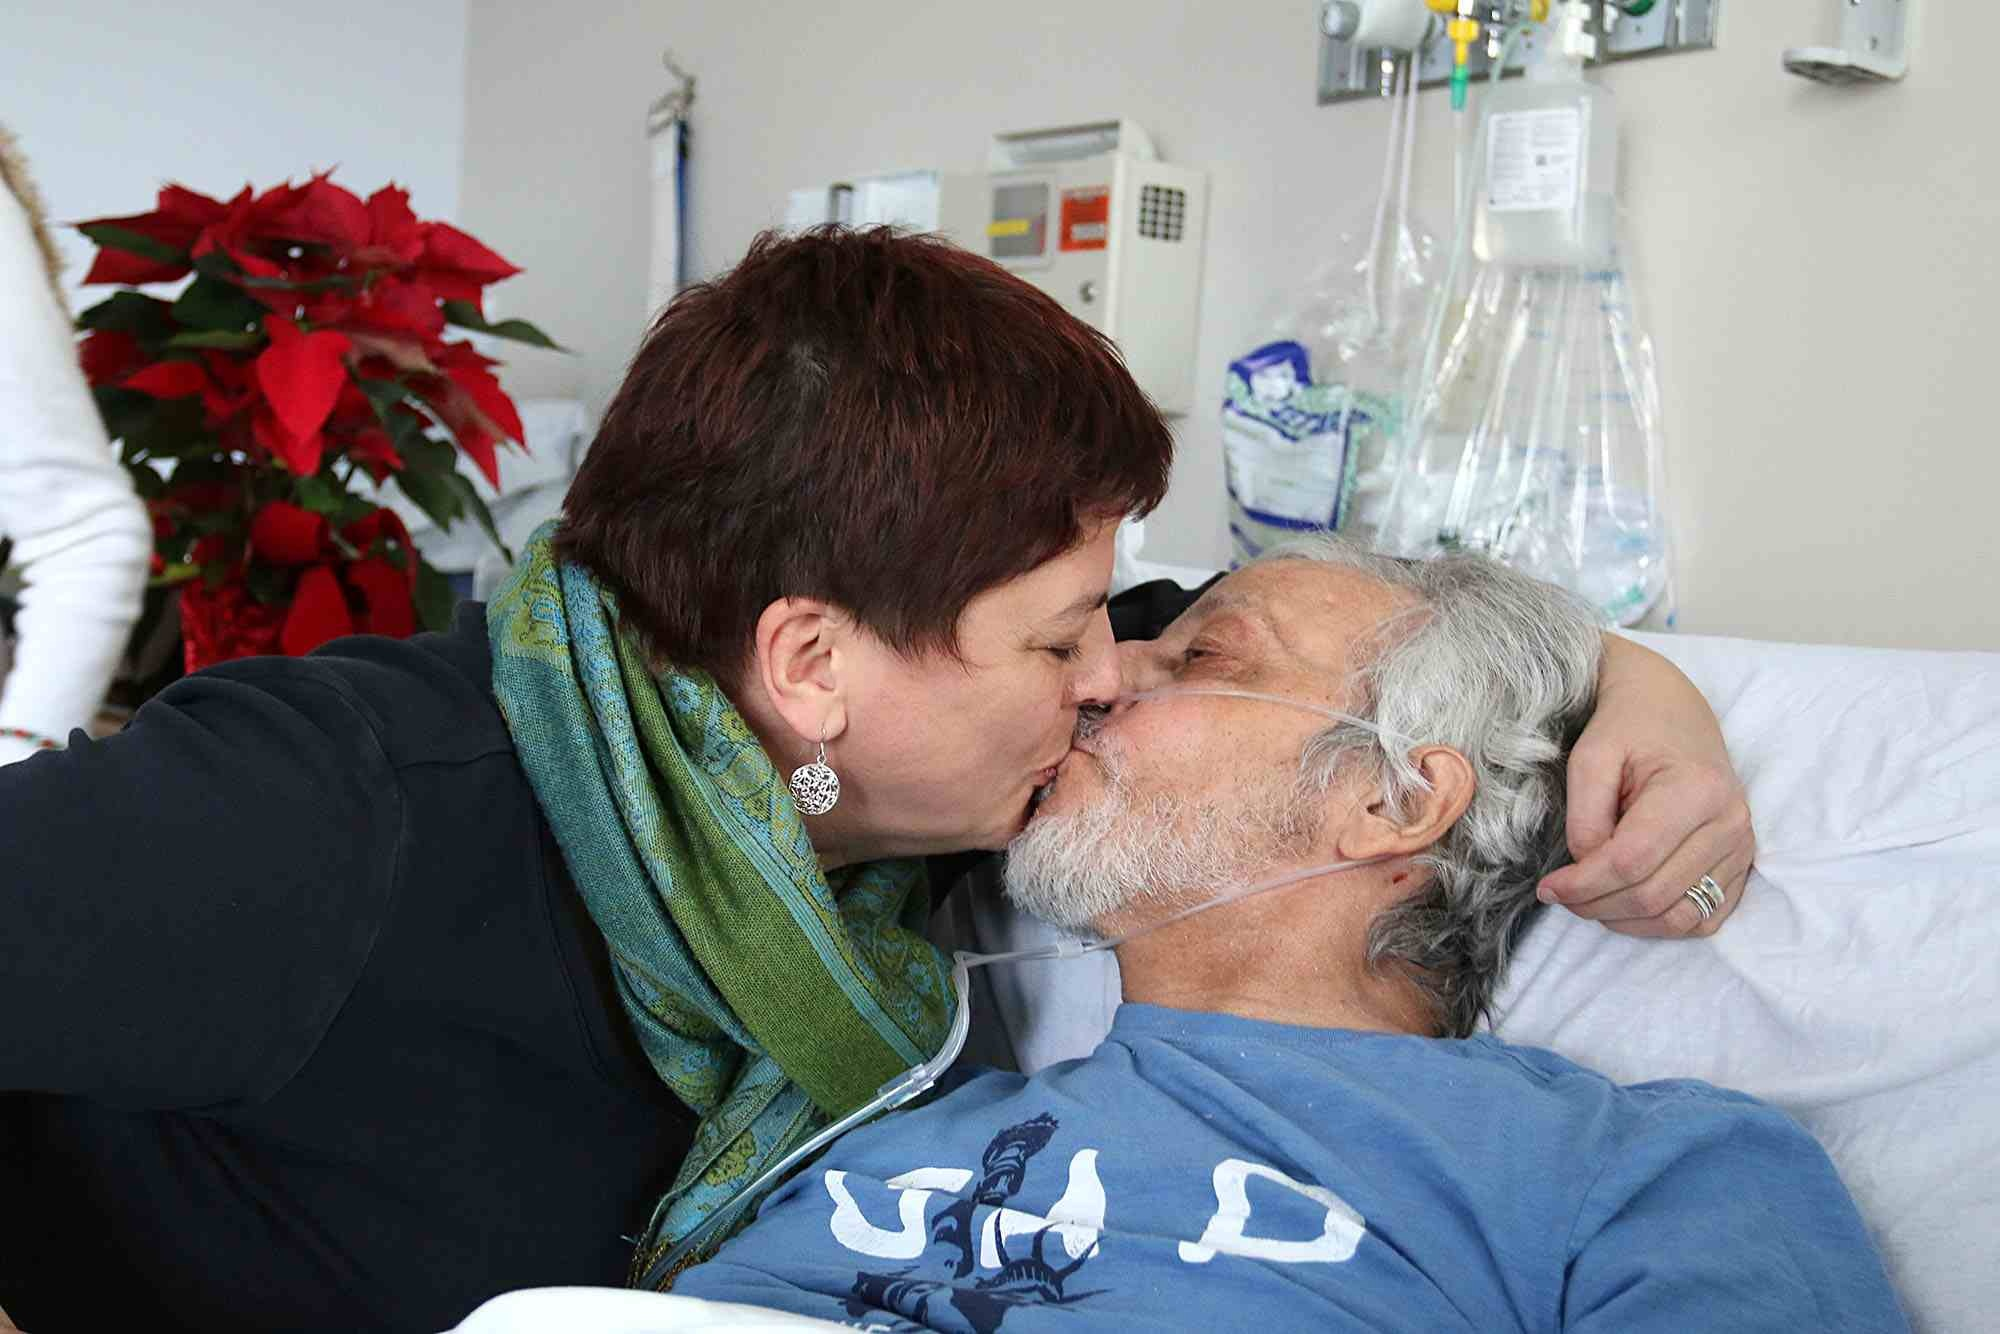 """Maurice """"Frenchie"""" La-Garde kisses his wife, Heike Petermann, at the Whittier Rehabilitation Hospital in Haverhill on Thursday. La-Garde, a quadriplegic since 1987, has overcome a lot in his 61 years, and his family is asking the community for help in making it over one more hurdle: getting back home to North Chelmsford. See video at lowellsun.com. (SUN / JOHN LOVE)  Read more:  http://www.lowellsun.com/breakingnews/ci_31514501/no-mountain-too-high#ixzz50tZwThMI"""